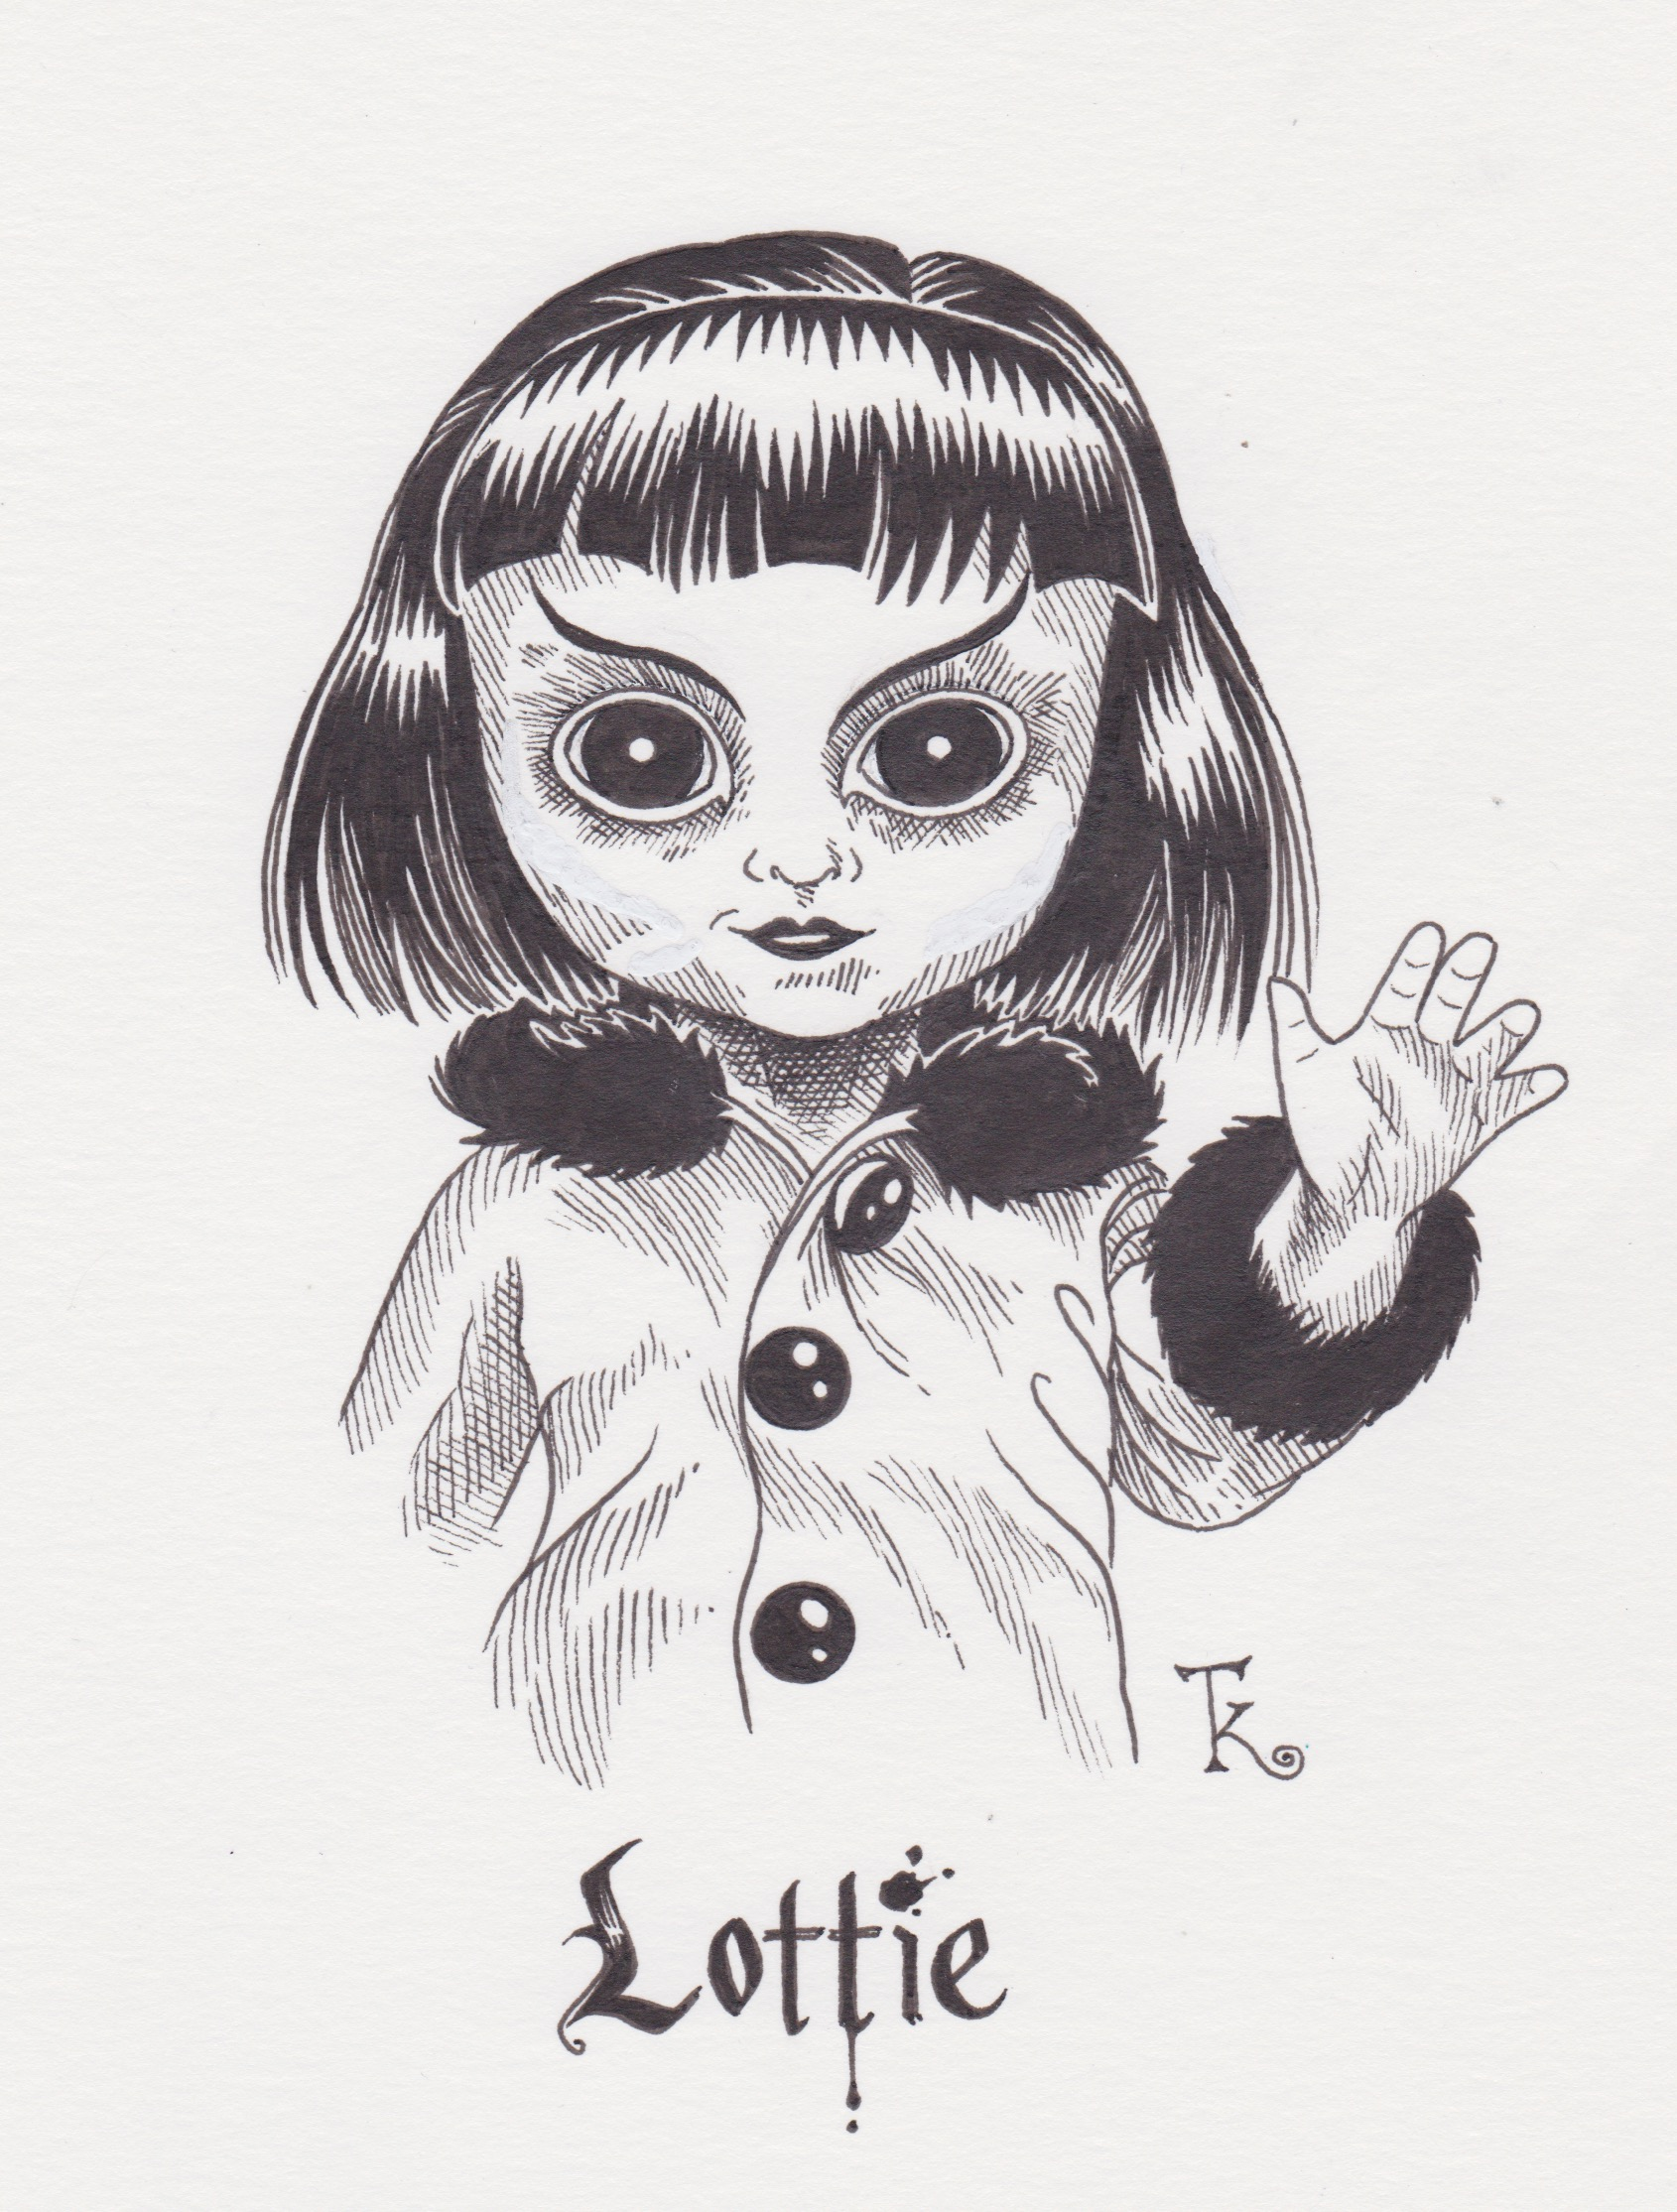 Living Dead Doll 2 (Lottie)